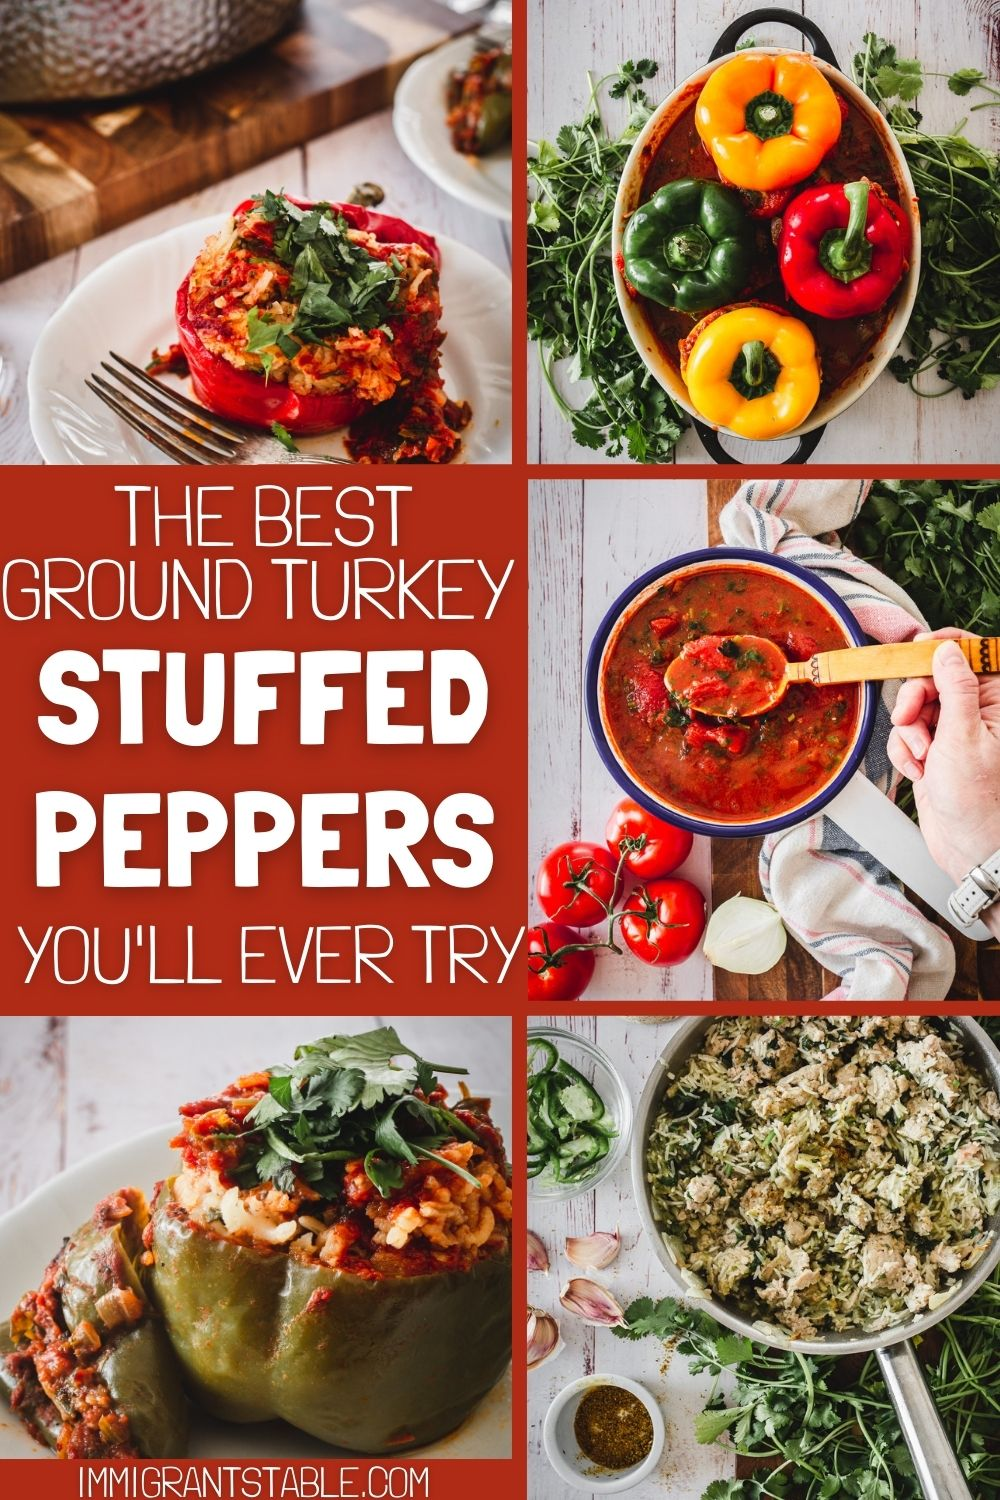 the best ground turkey stuffed peppers you'll ever try